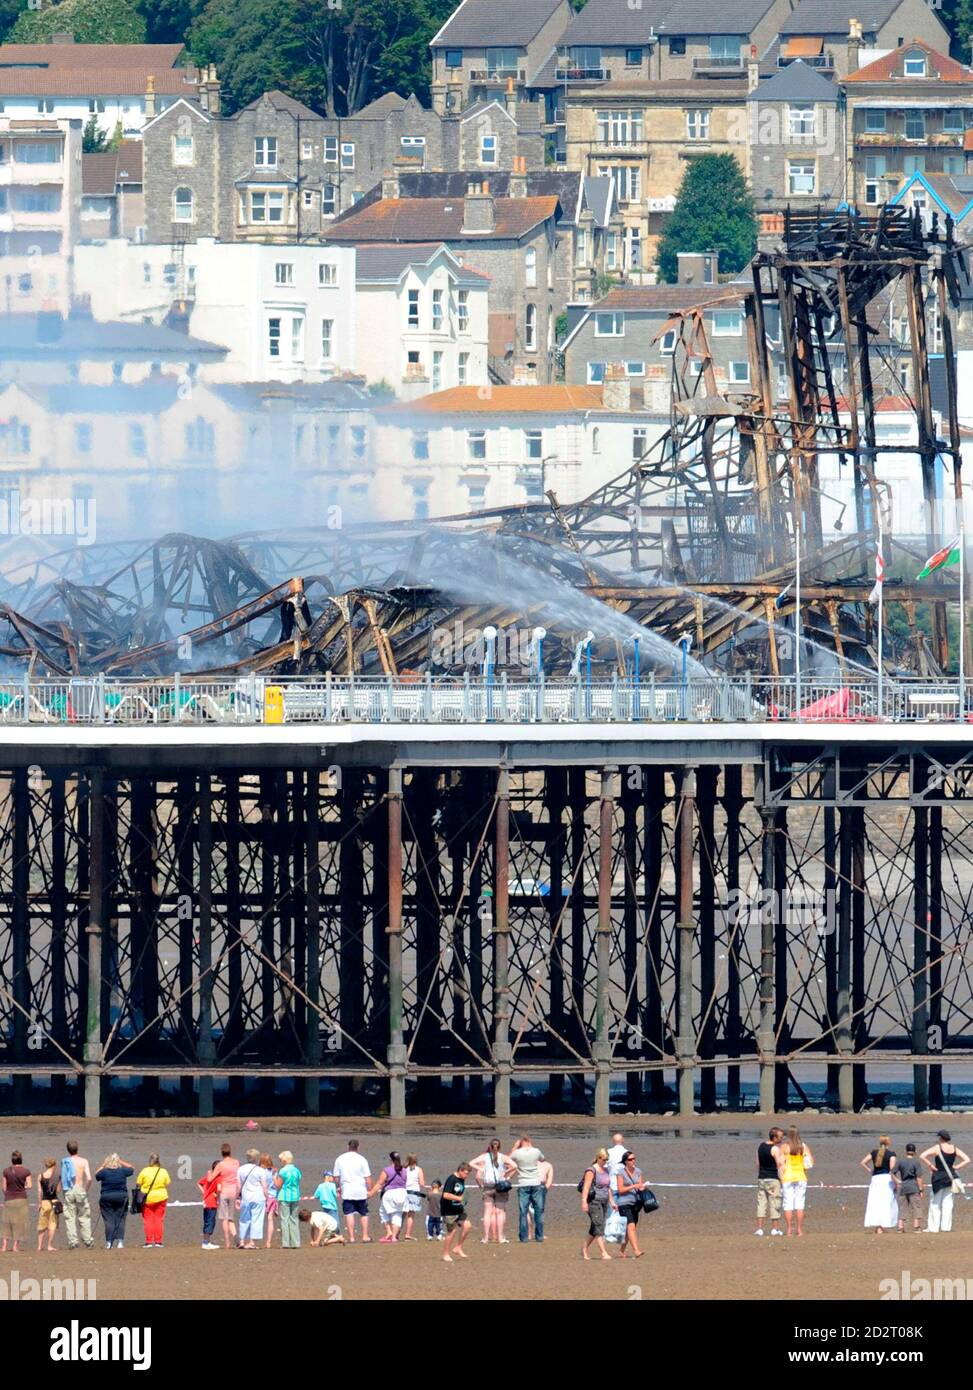 Holiday makers look at the Grand Pier at Weston-Super-Mare in south west England July 28, 2008. Firefighters were called to a large blaze that swept through the historic pier at the Somerset seaside resort of Weston-super-Mare on Monday, police said. Flames and thick black smoke engulfed the structure and could be seen from the M5 motorway, several miles from the coast, a fire brigade spokeswoman said.   REUTERS/Toby Melville    (BRITAIN) Stock Photo